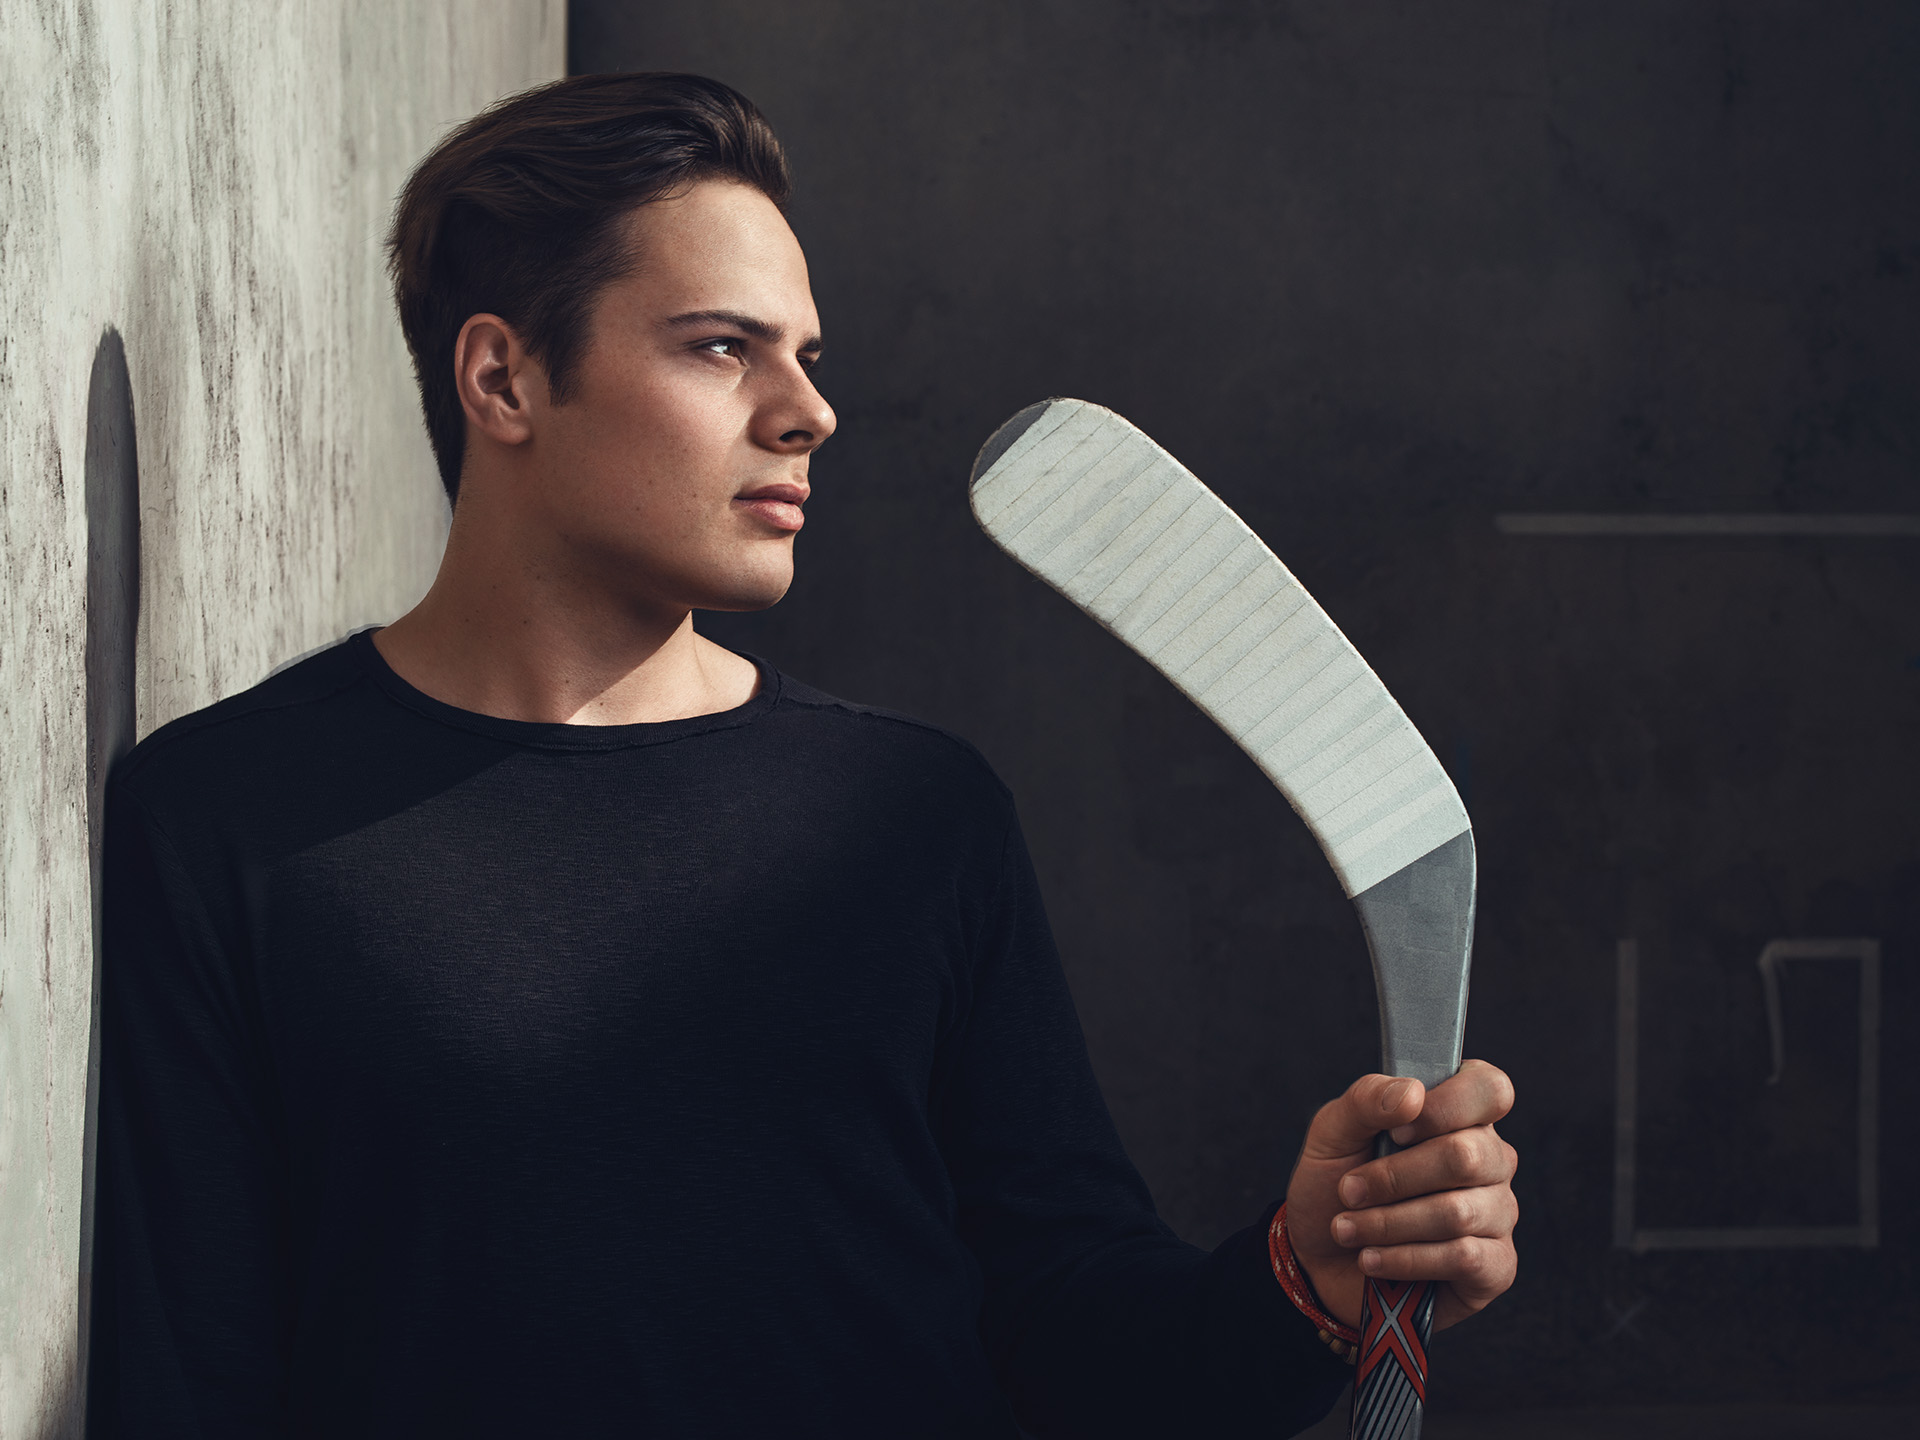 Auston Matthews Fashion photoshoot by Blair Bunting